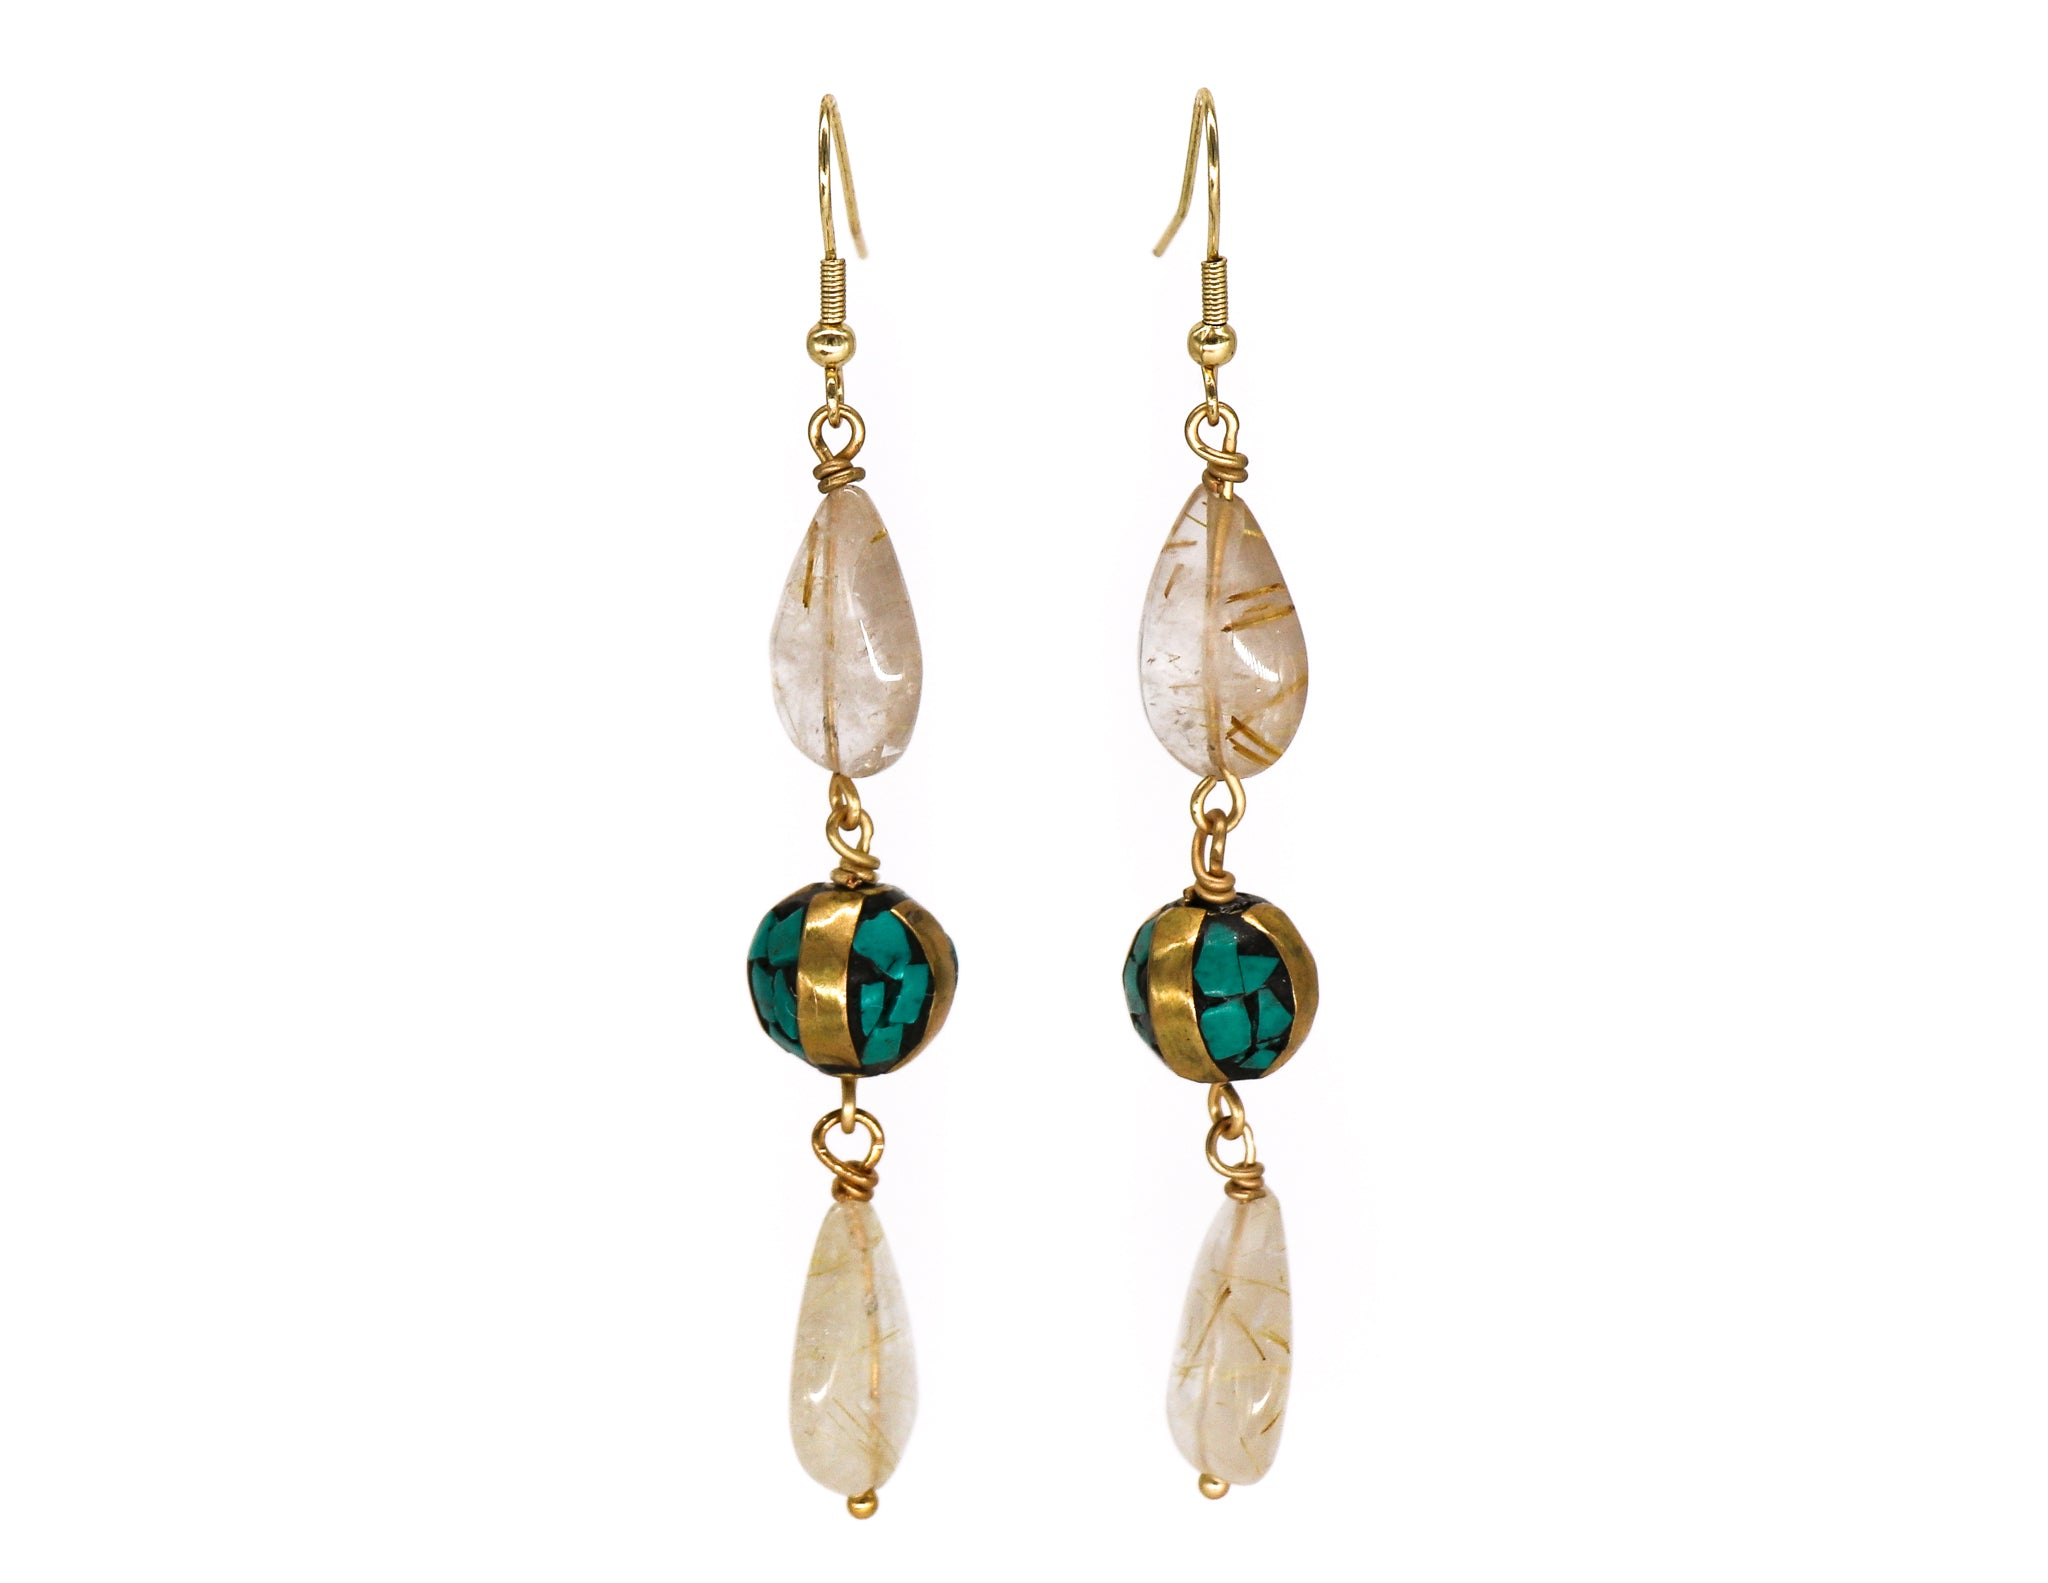 Golden rhutilated quartz with turquoise earrings